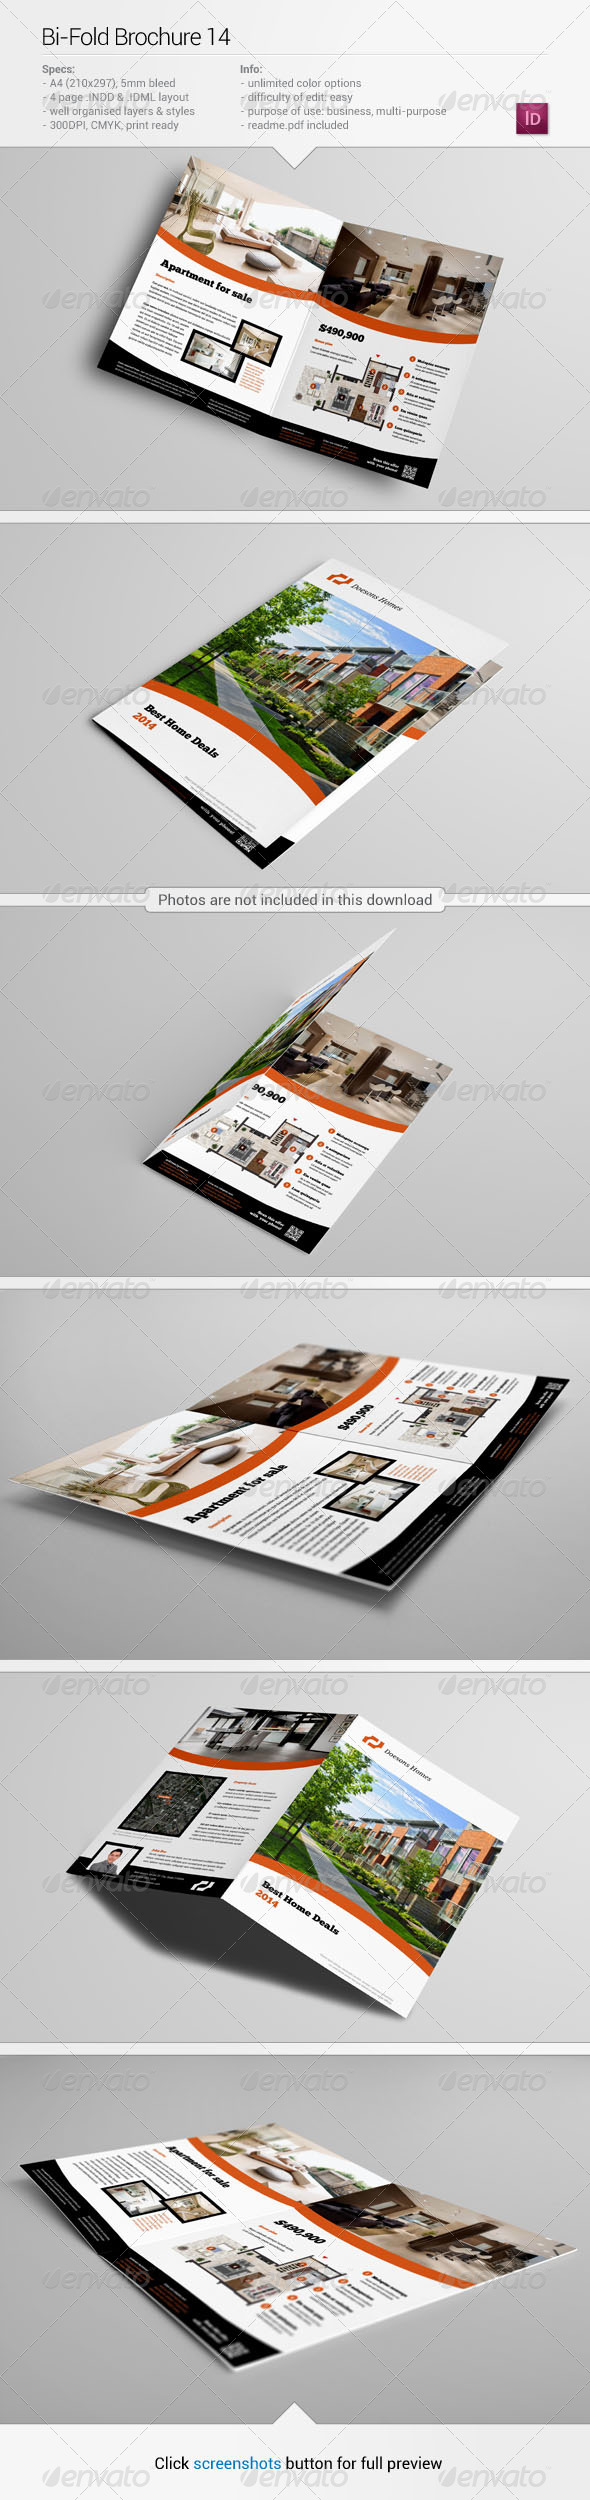 GraphicRiver Bi-Fold Brochure 14 5604173